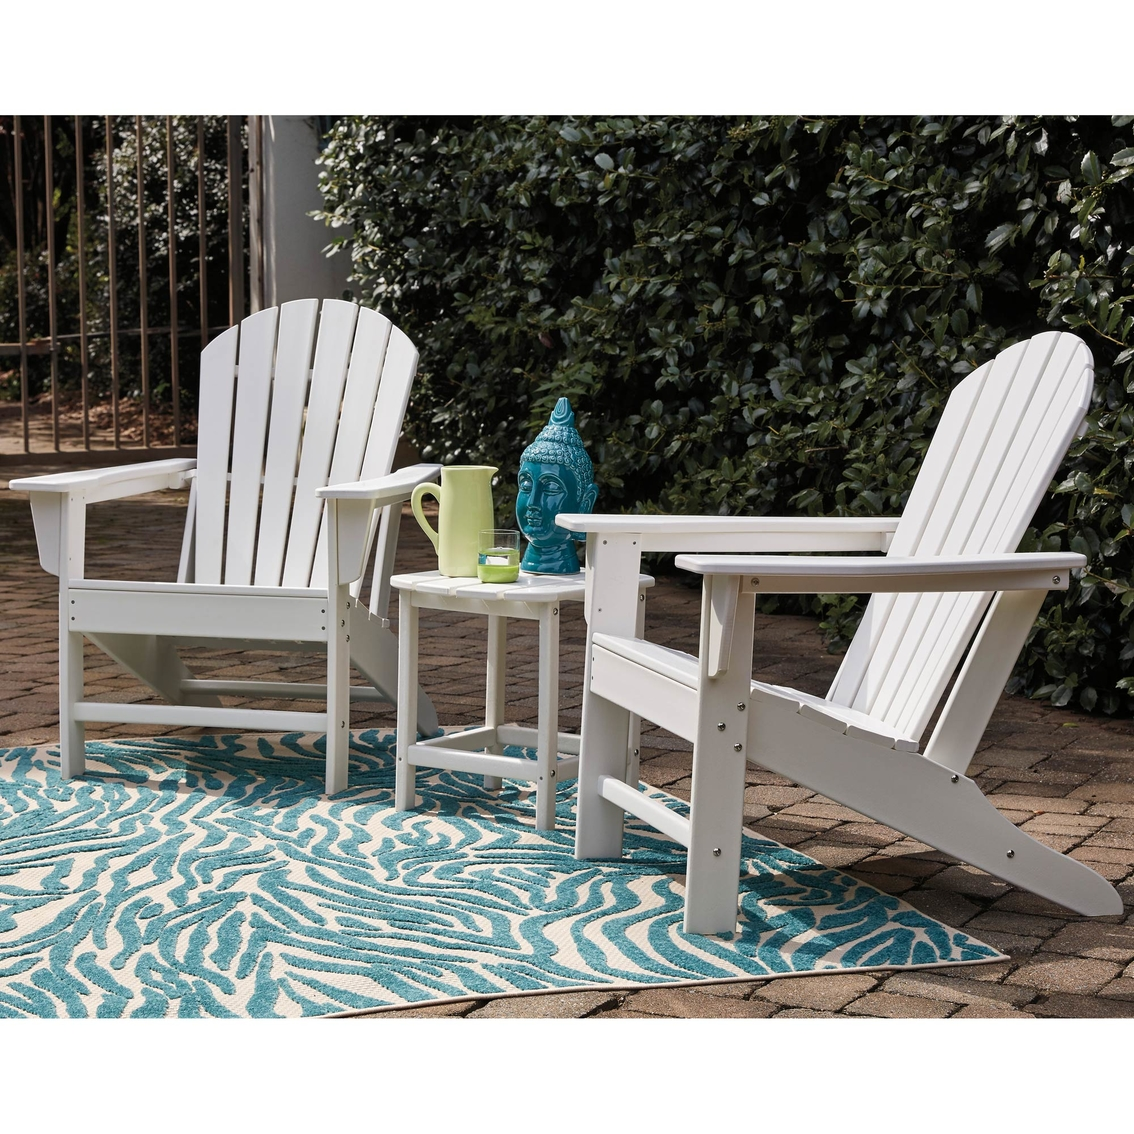 Signature Design By Ashley Adirondack Chairs 2 End Table